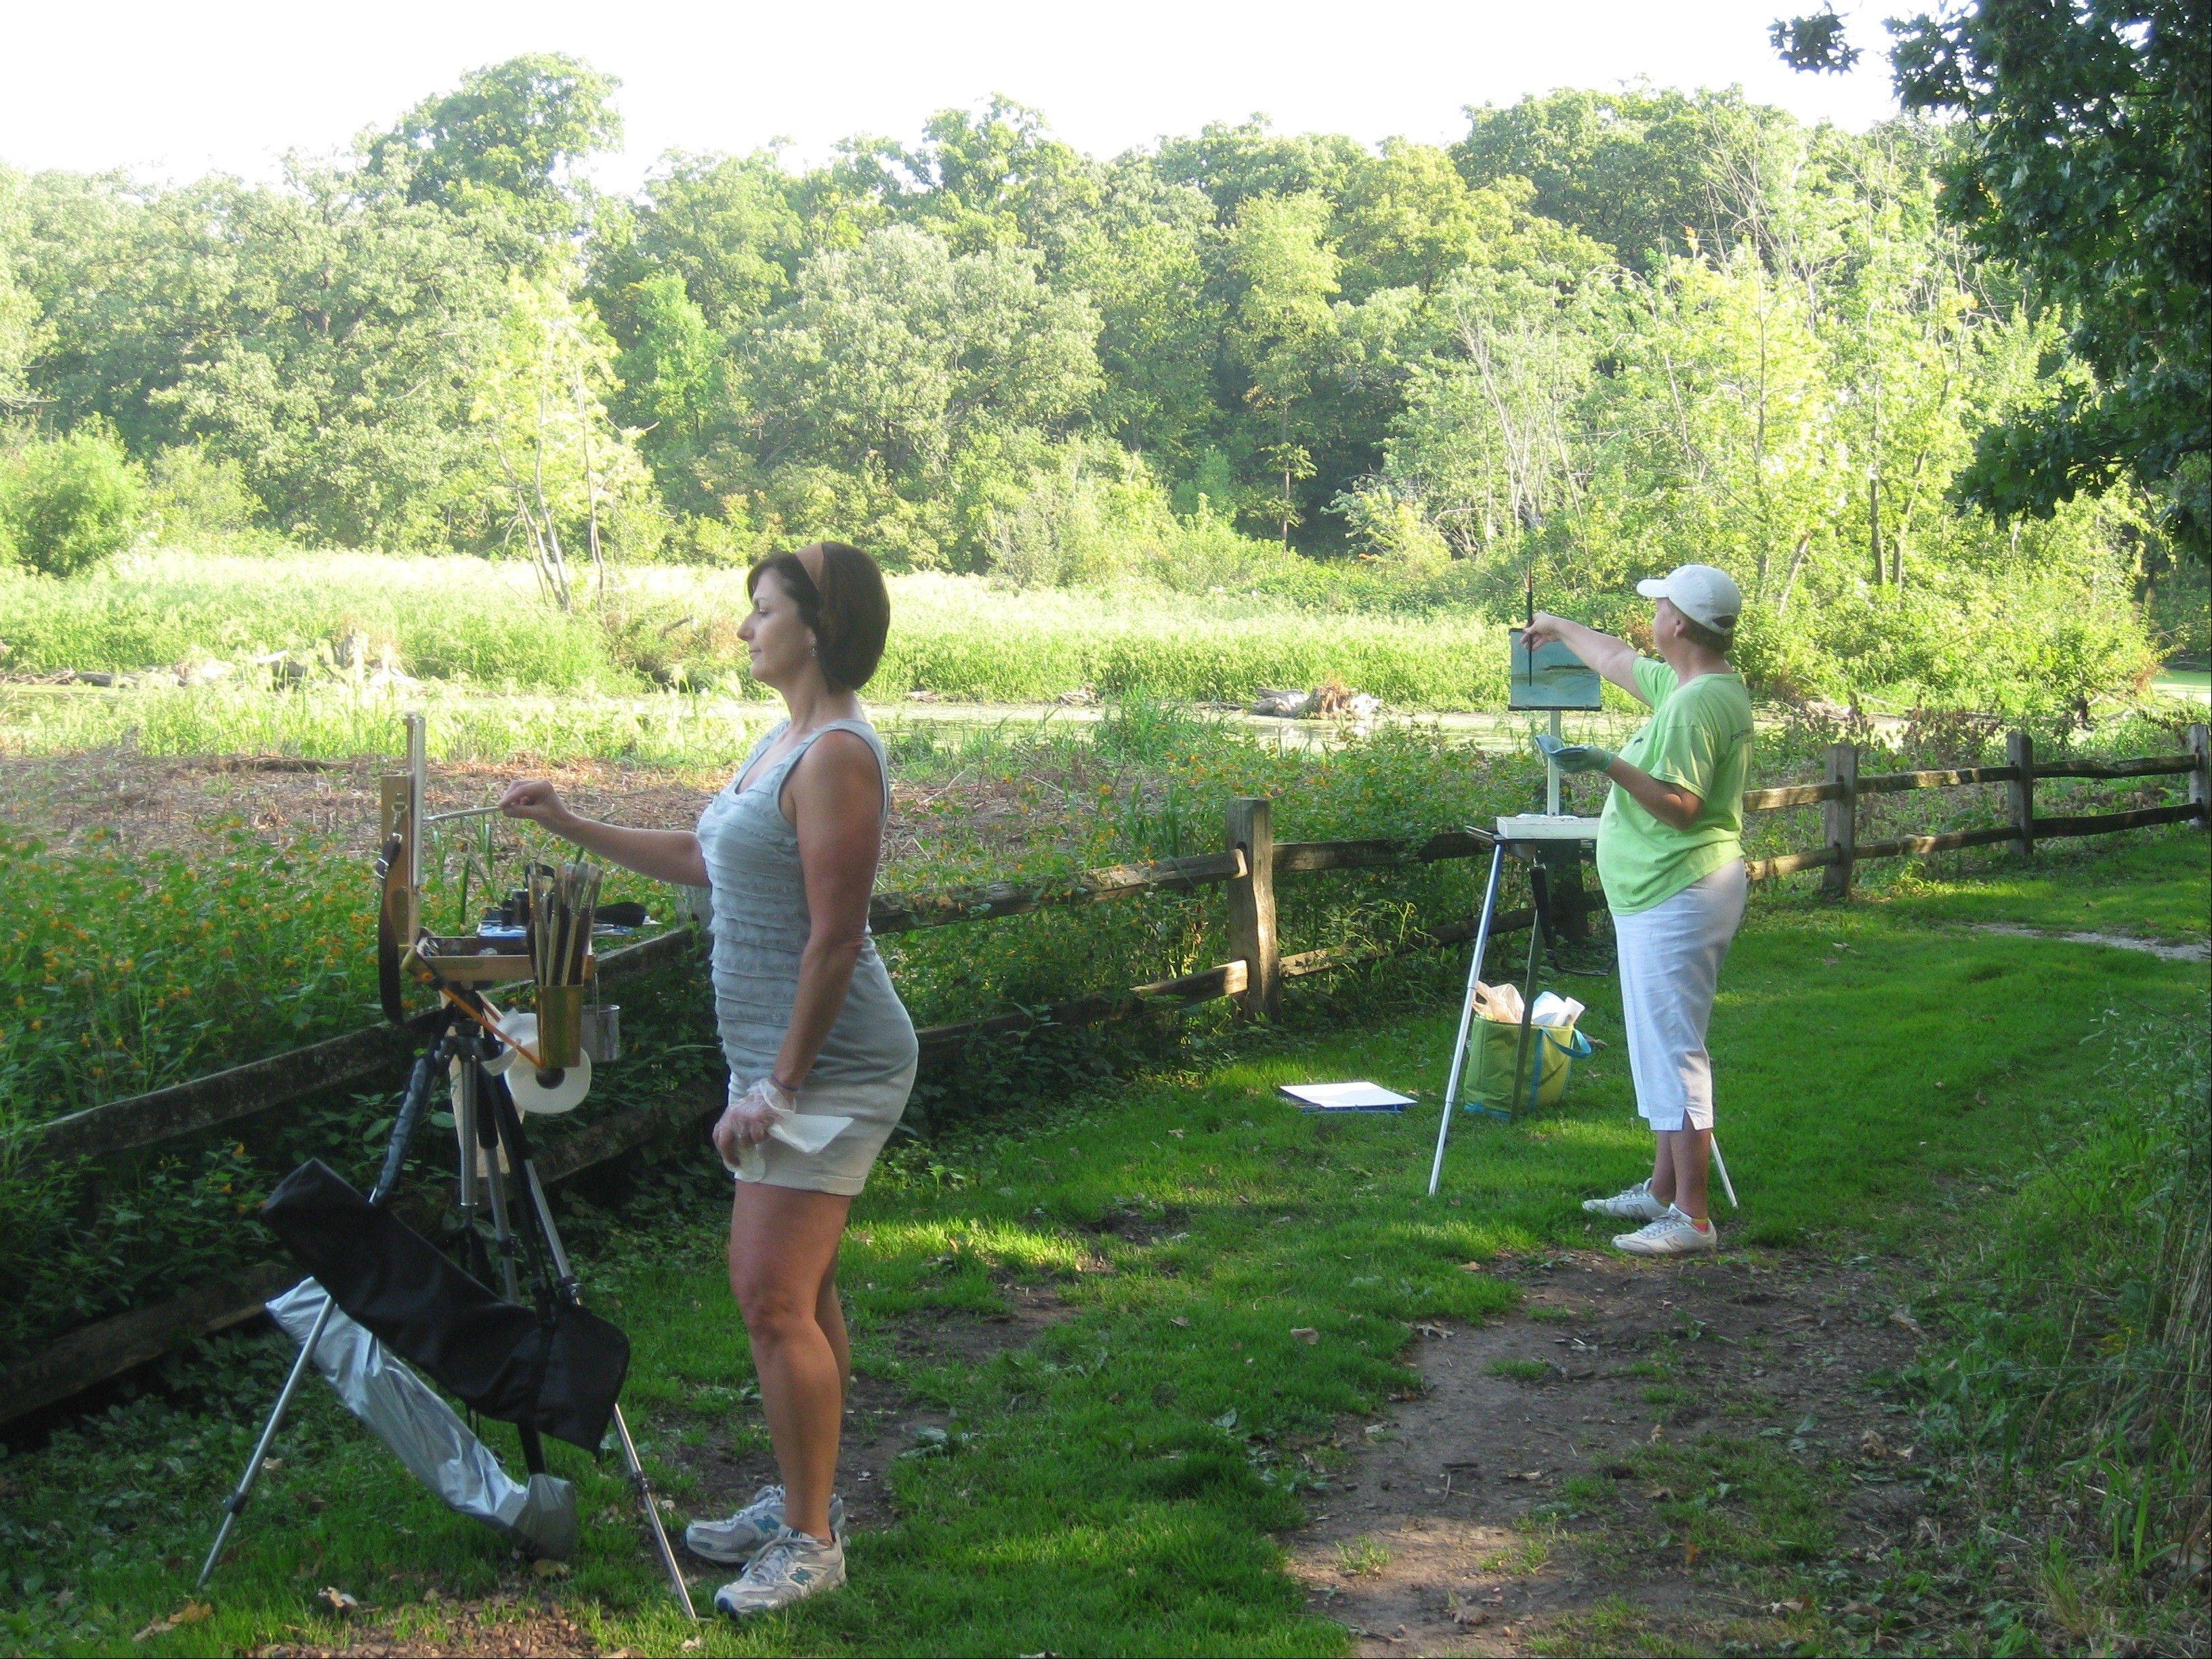 Artists paint at Crabtree Nature Center to get ready for Art in Nature Sept. 23.